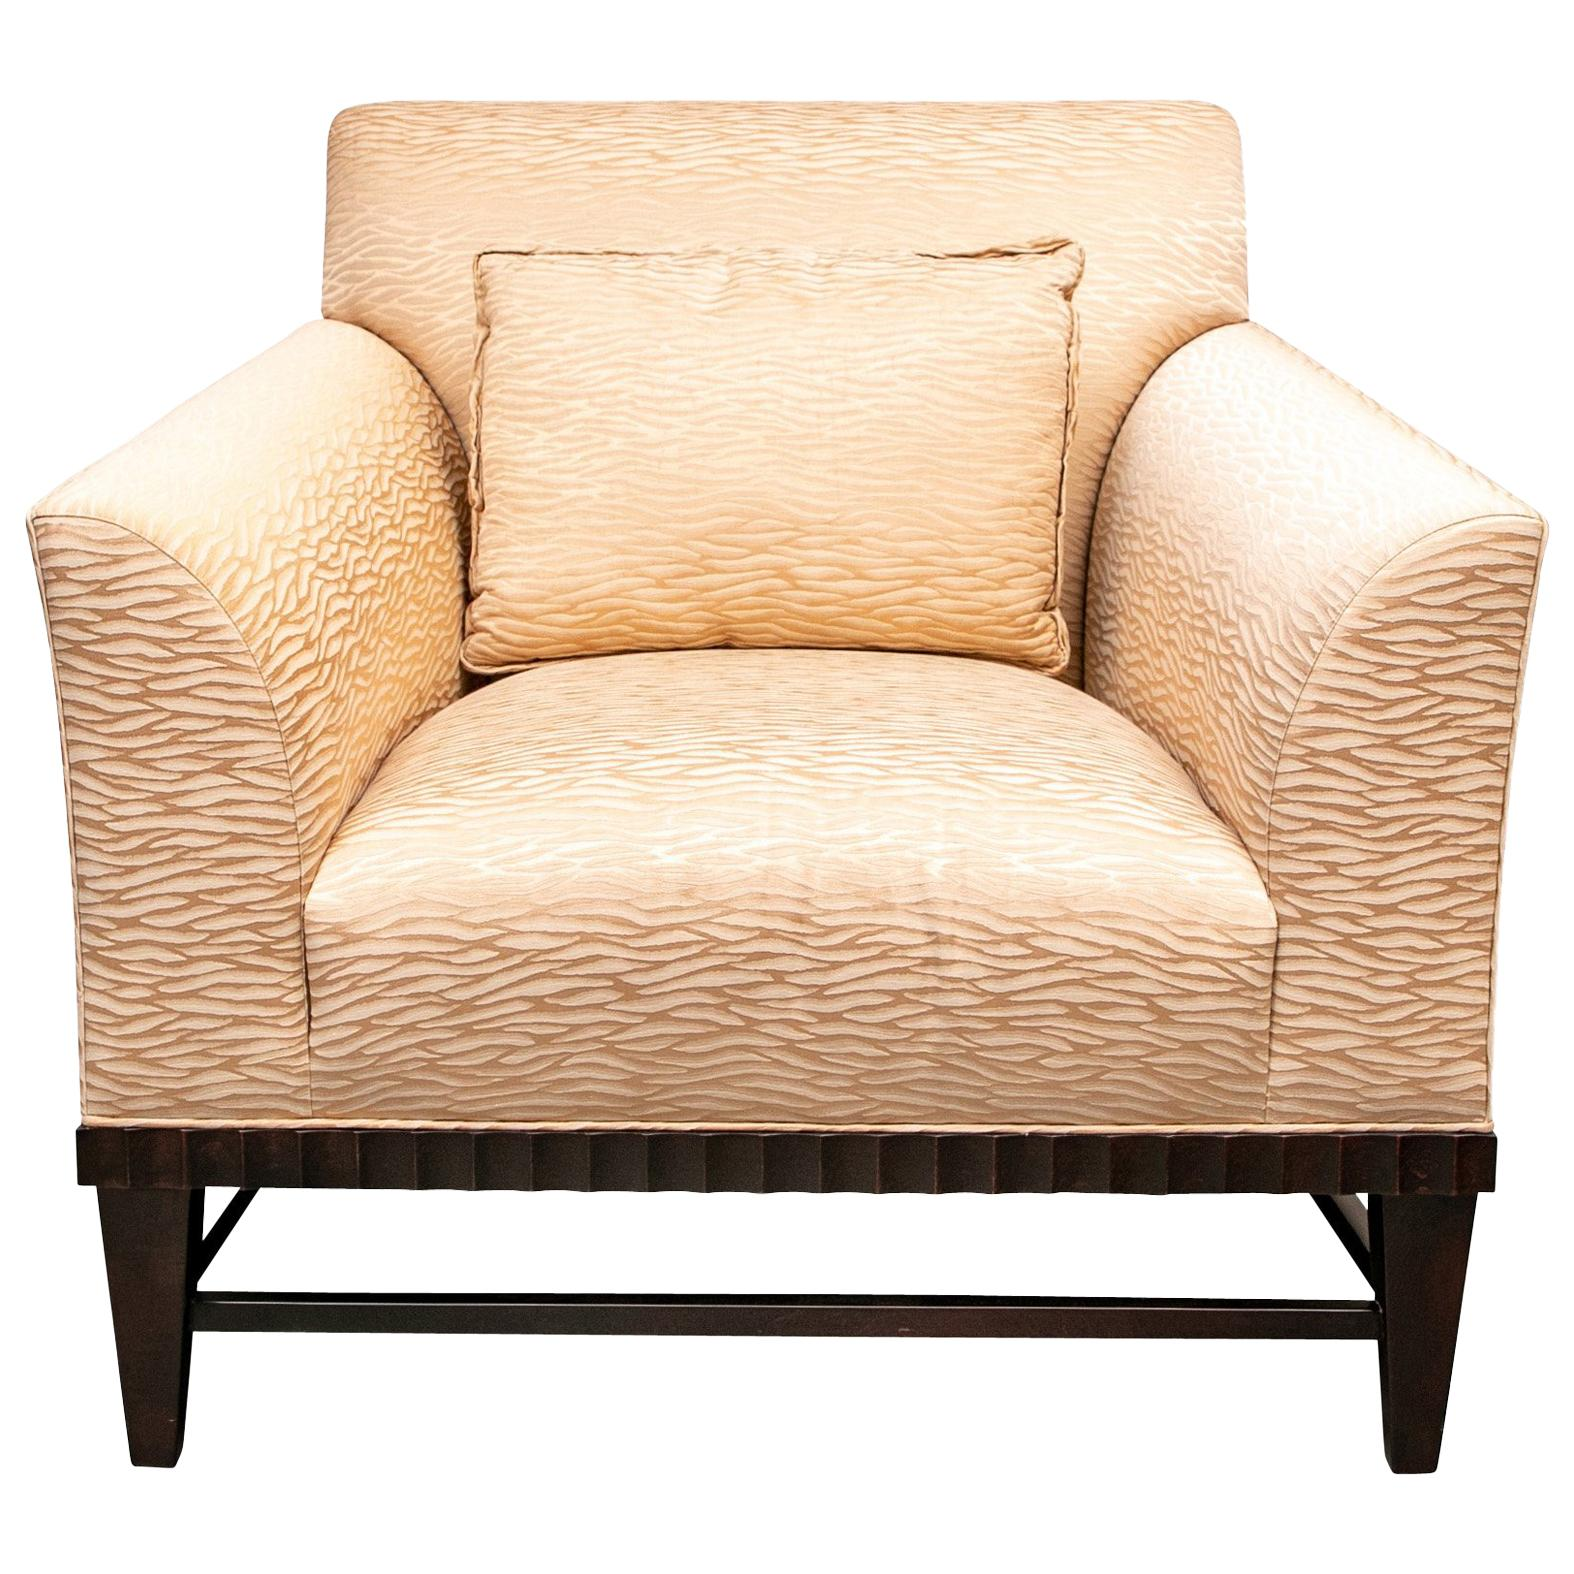 Charmant Barbara Barry For Baker Oversized Armchair For Sale